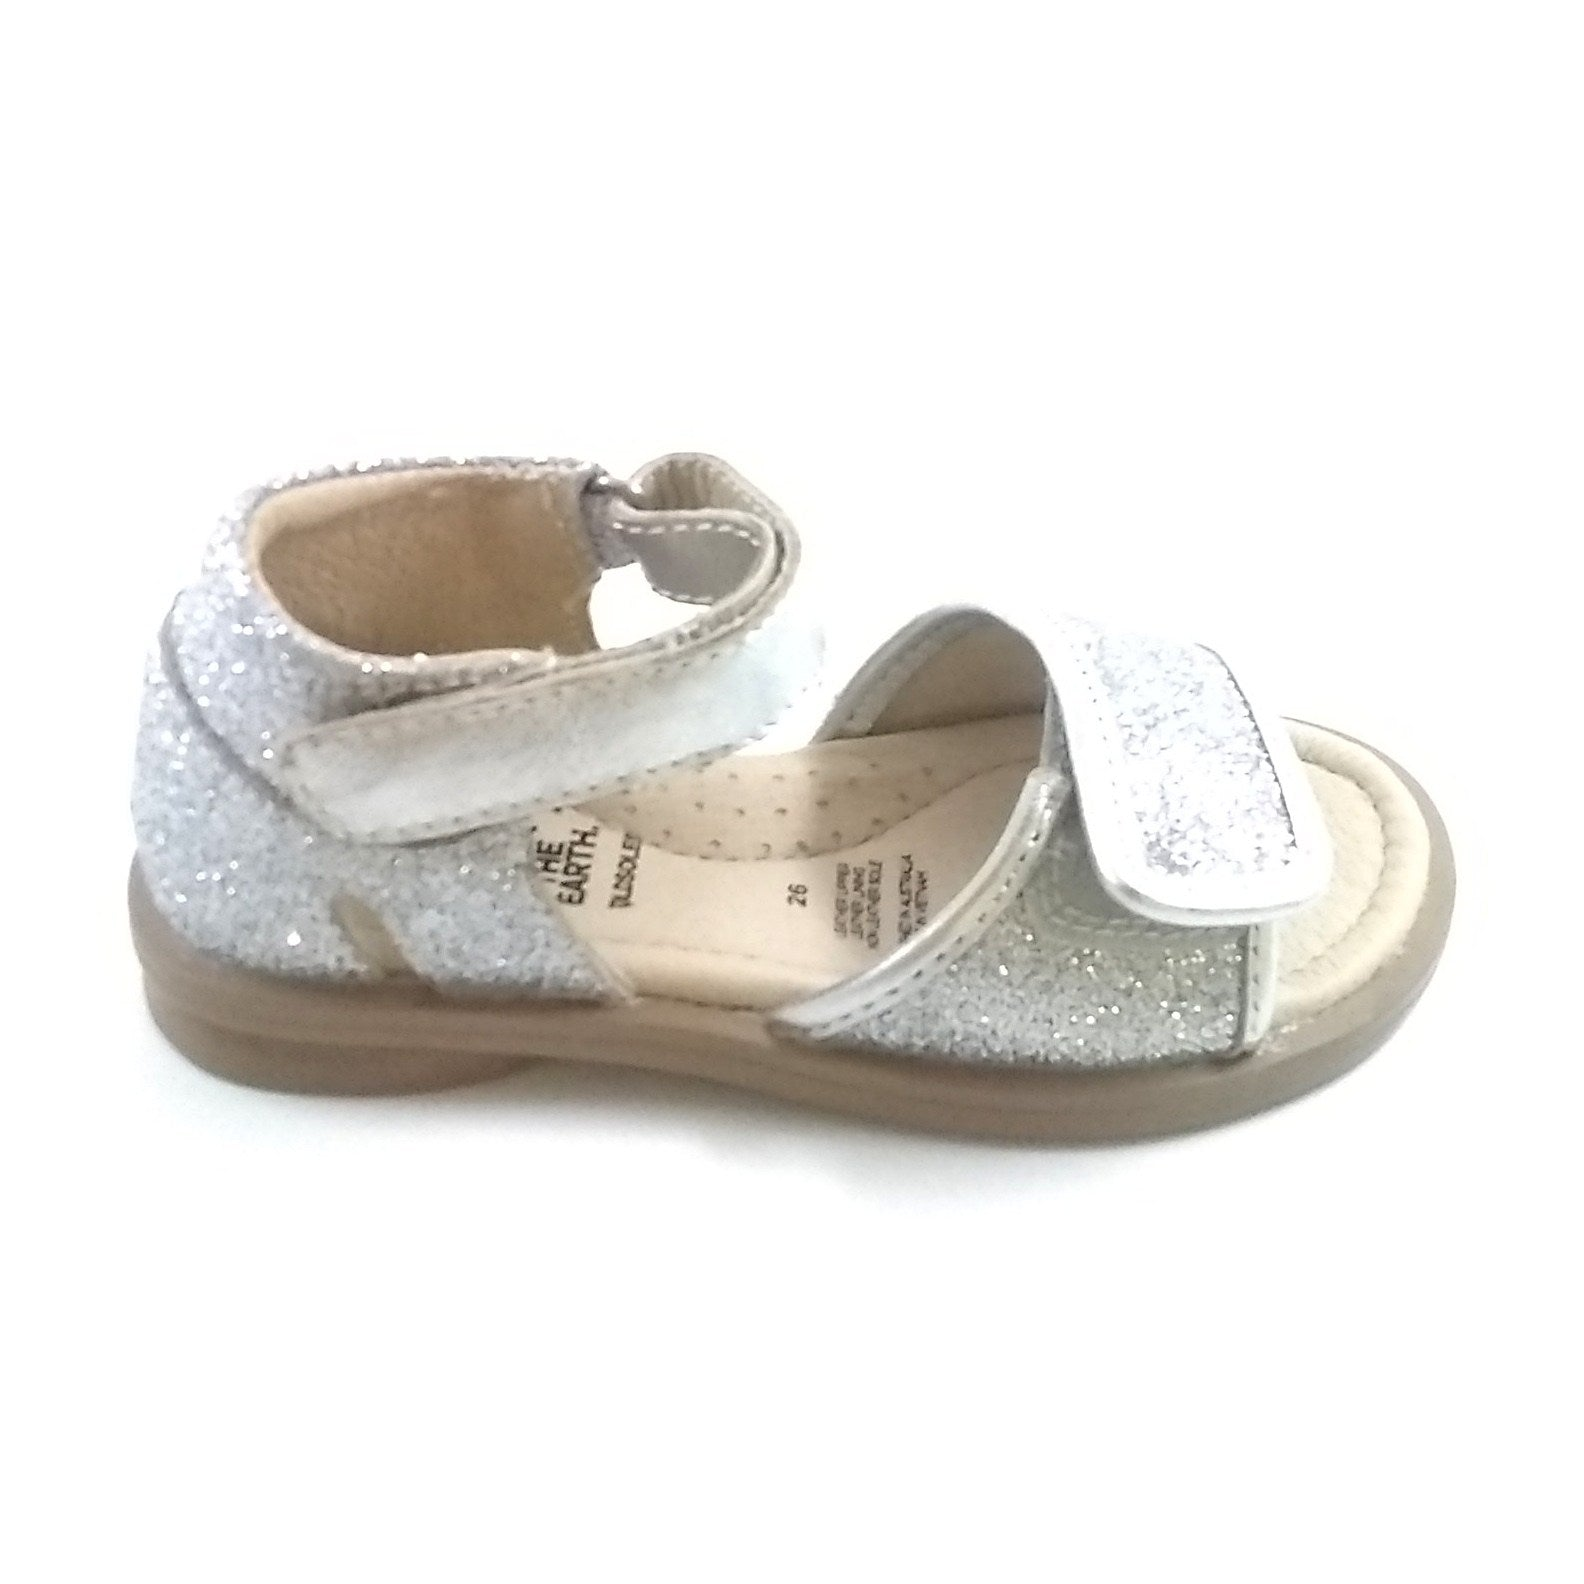 Old Soles Salsa Glam Argent/Silver